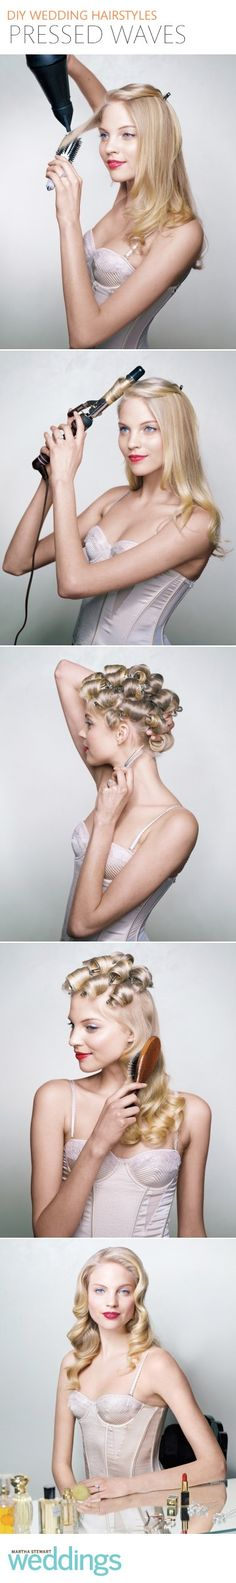 Learn how to master this glamorous pressed waves hairstyle for your big day.